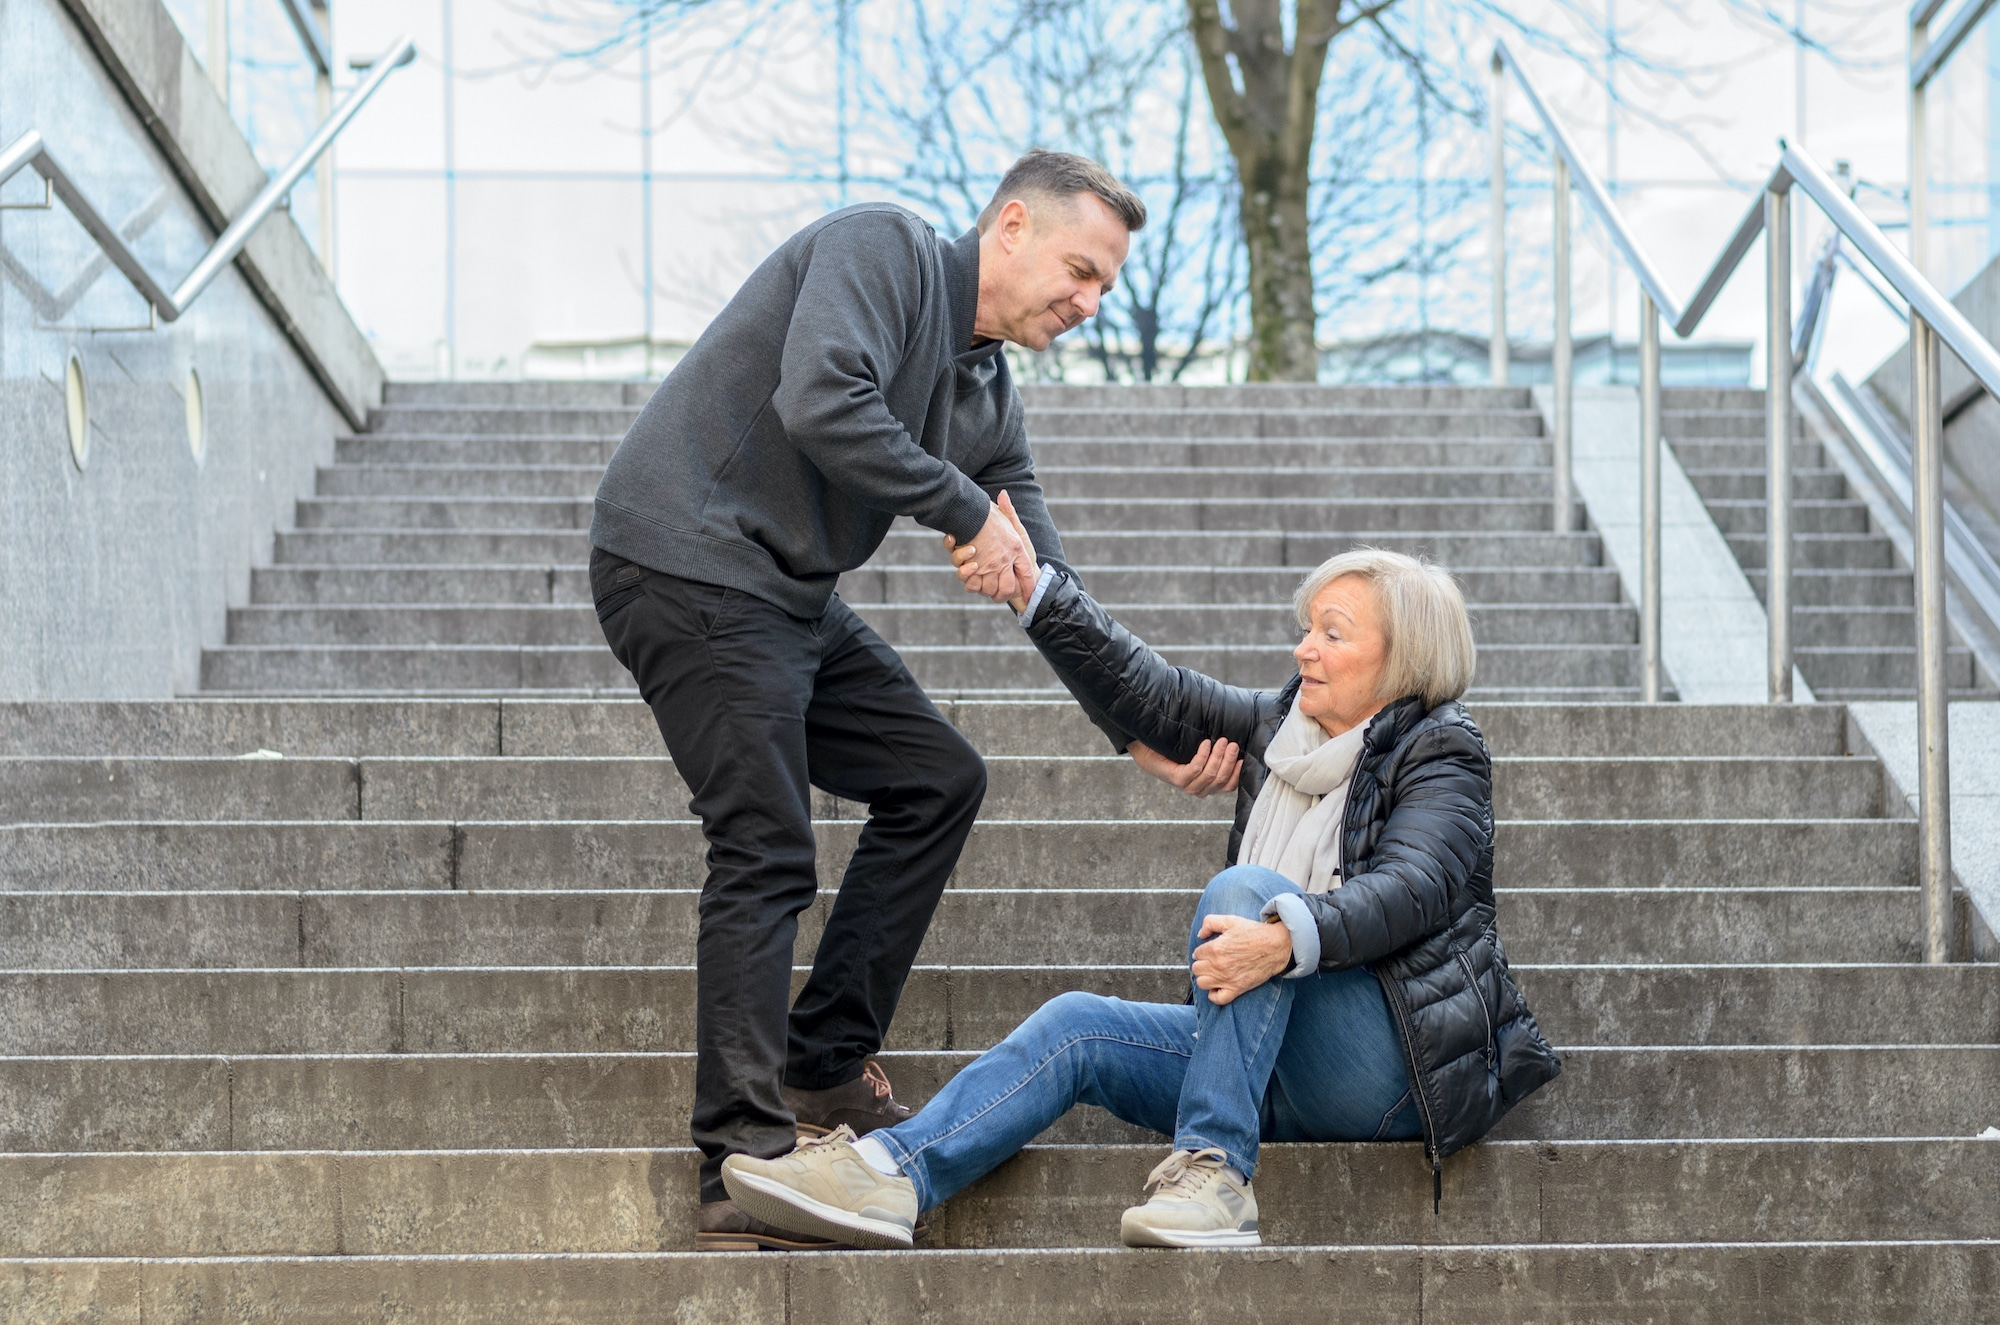 ohio slip and fall lawyer